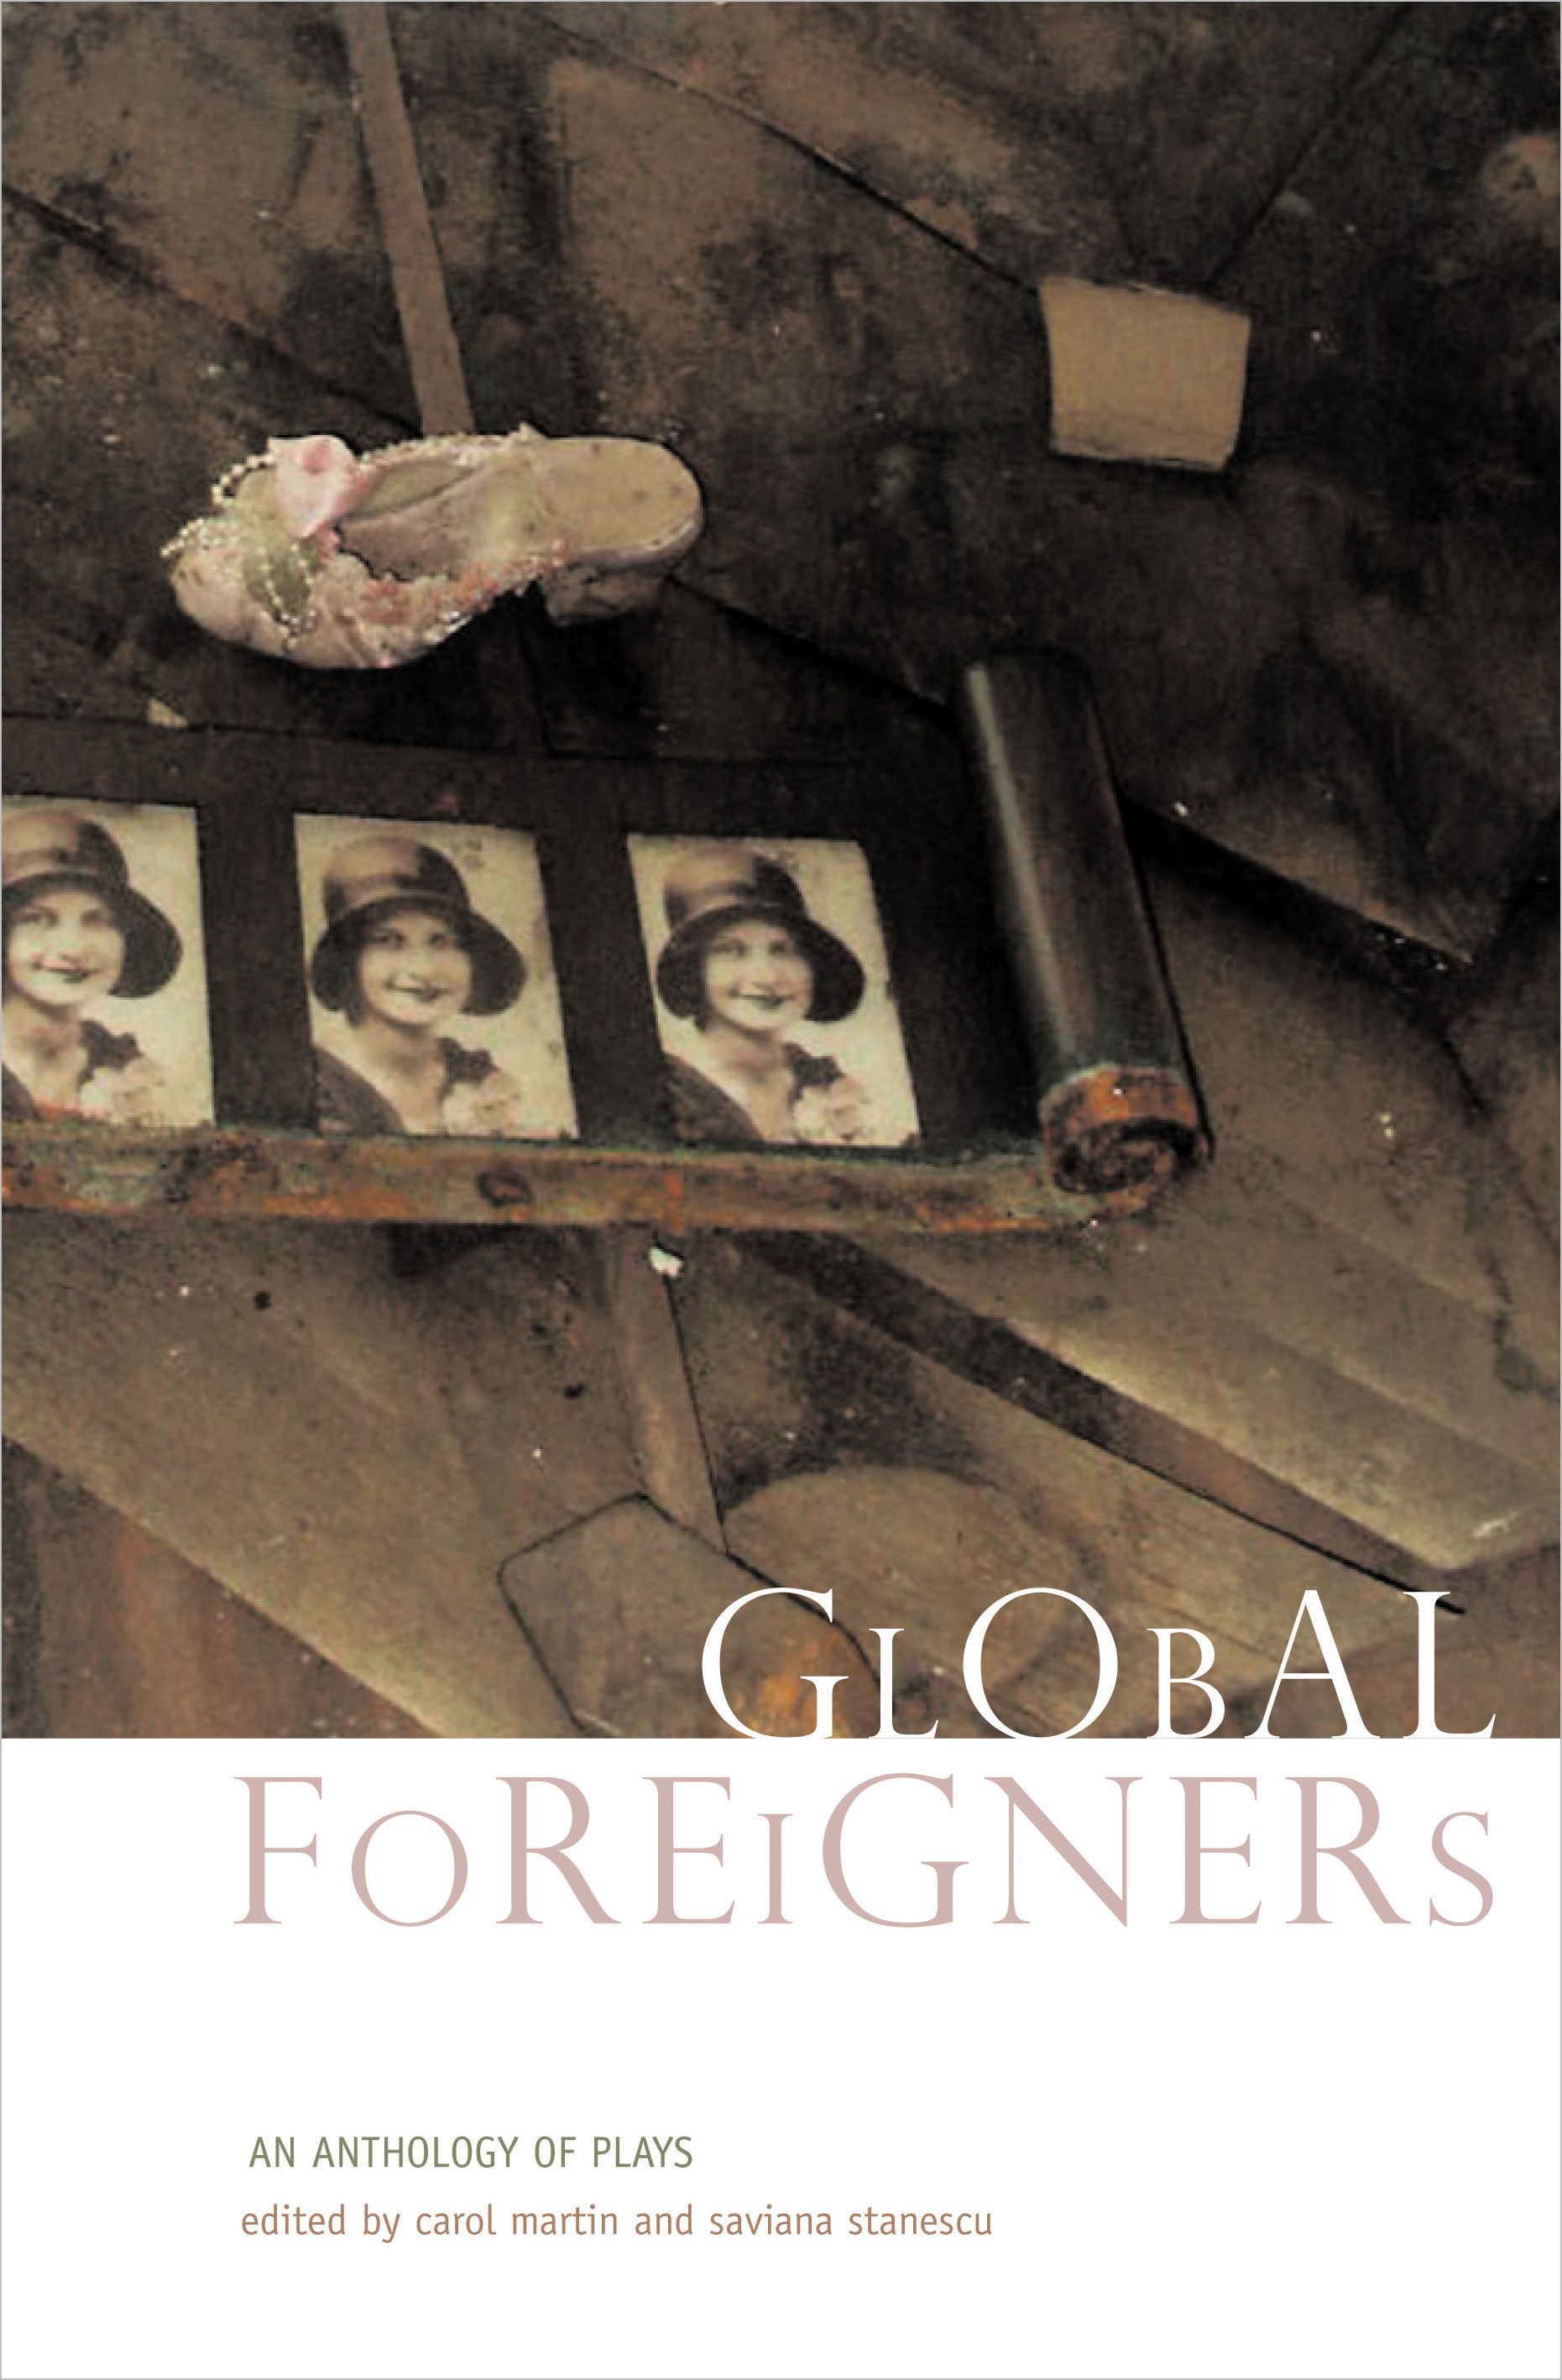 Global Foreigners: An Anthology of Plays | Seagull Books